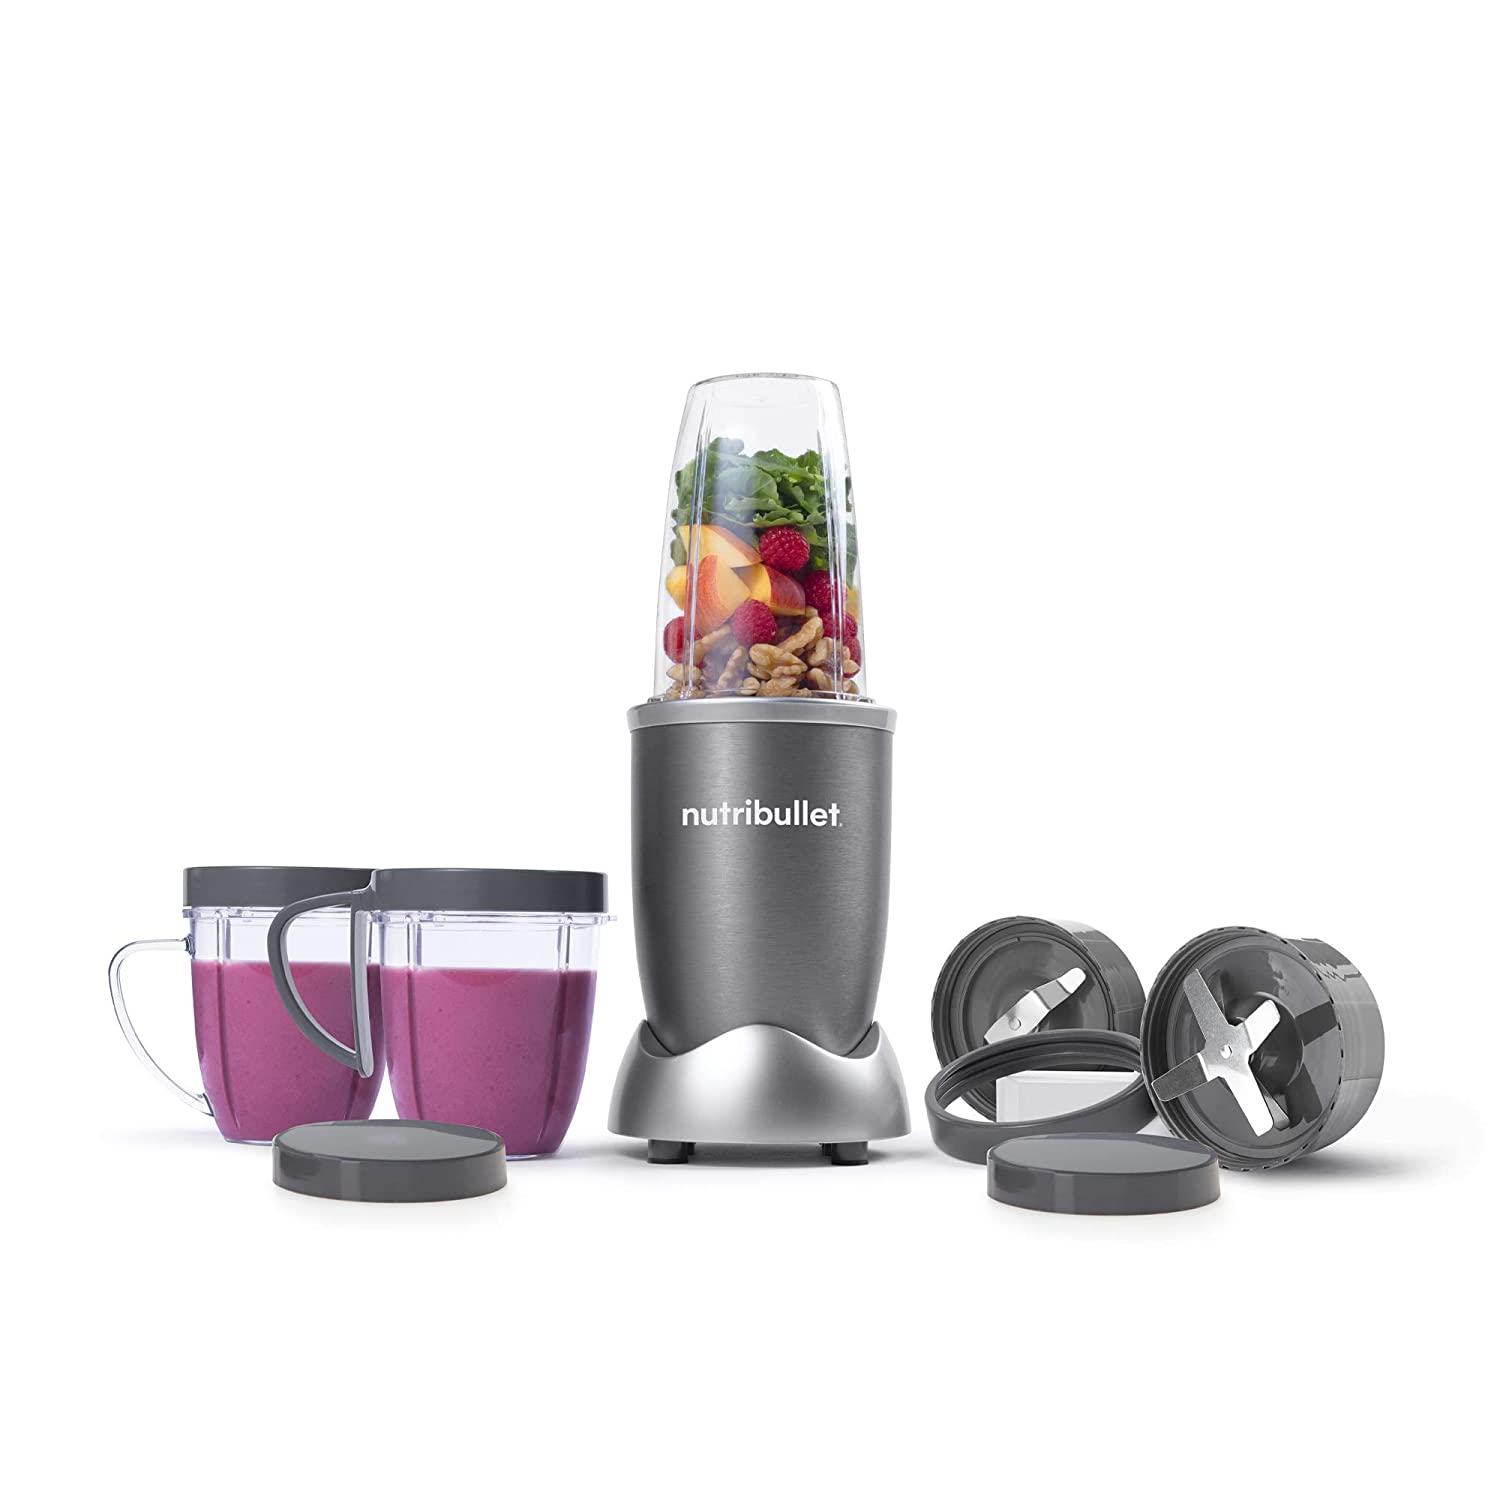 nutribullet blender holiday gift guide for the home